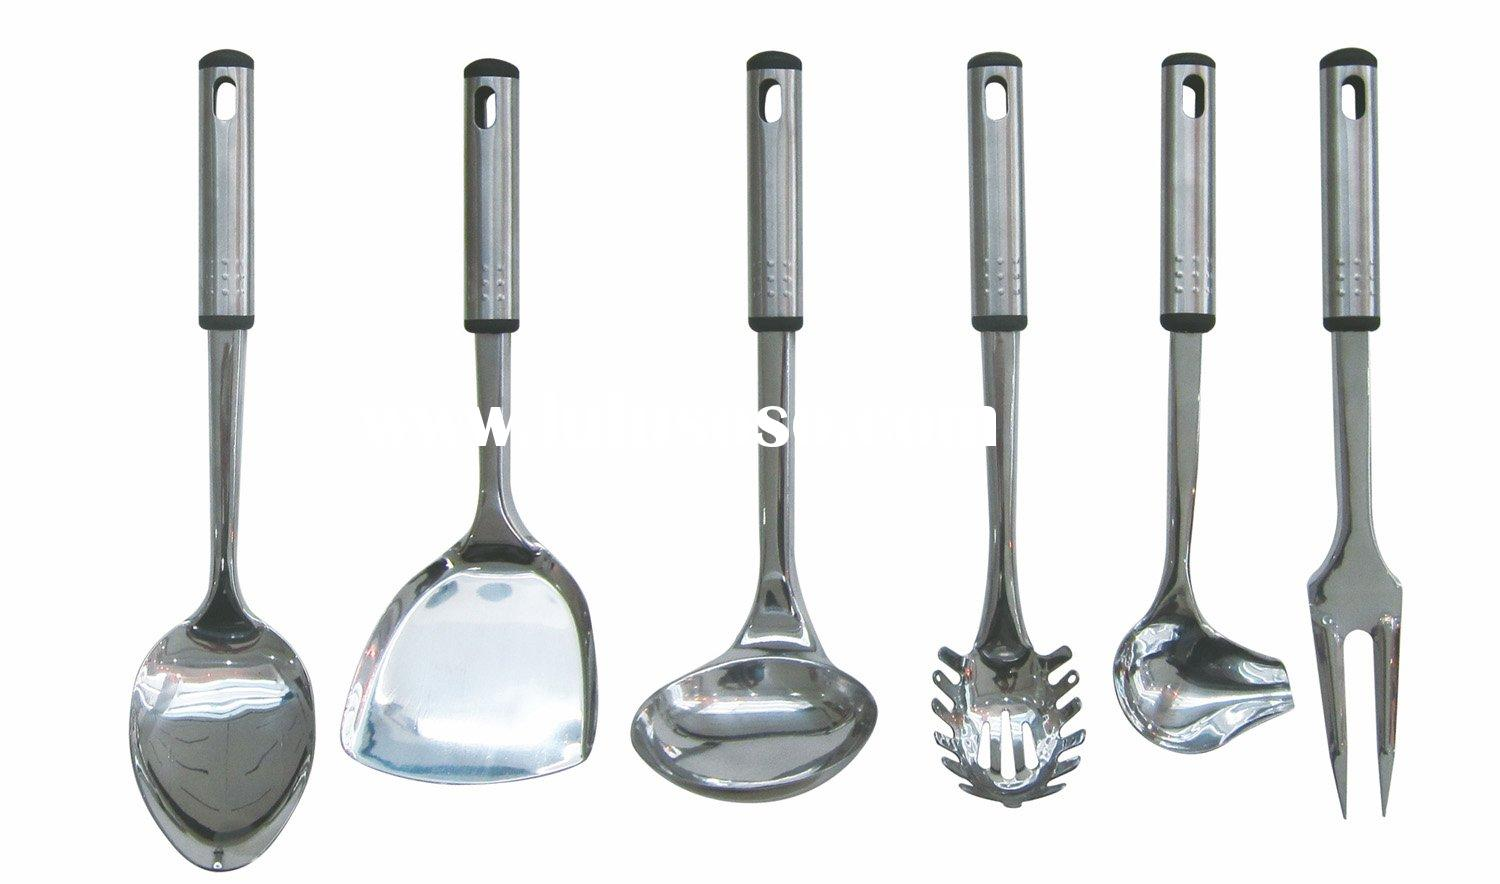 Stainless steel cooking utensils images for Kitchen utensils names